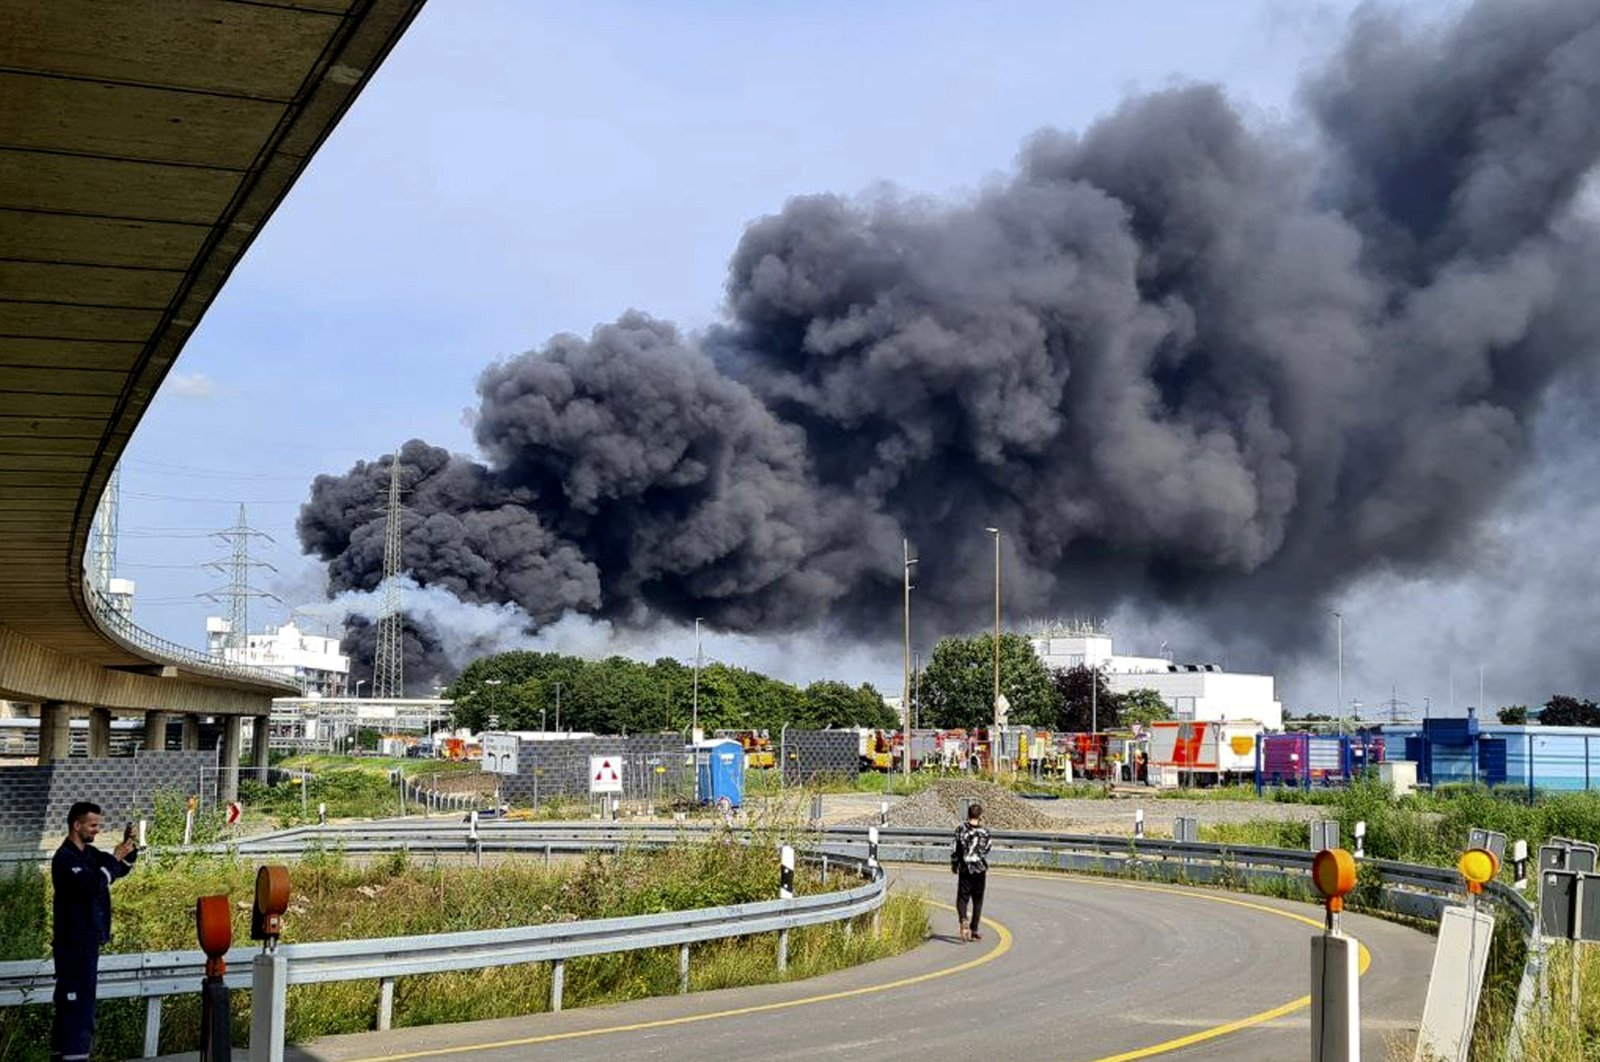 A dark cloud of smoke rises above the chemical park in Leverkusen, Germany, July 27, 2021. (AP Photo)